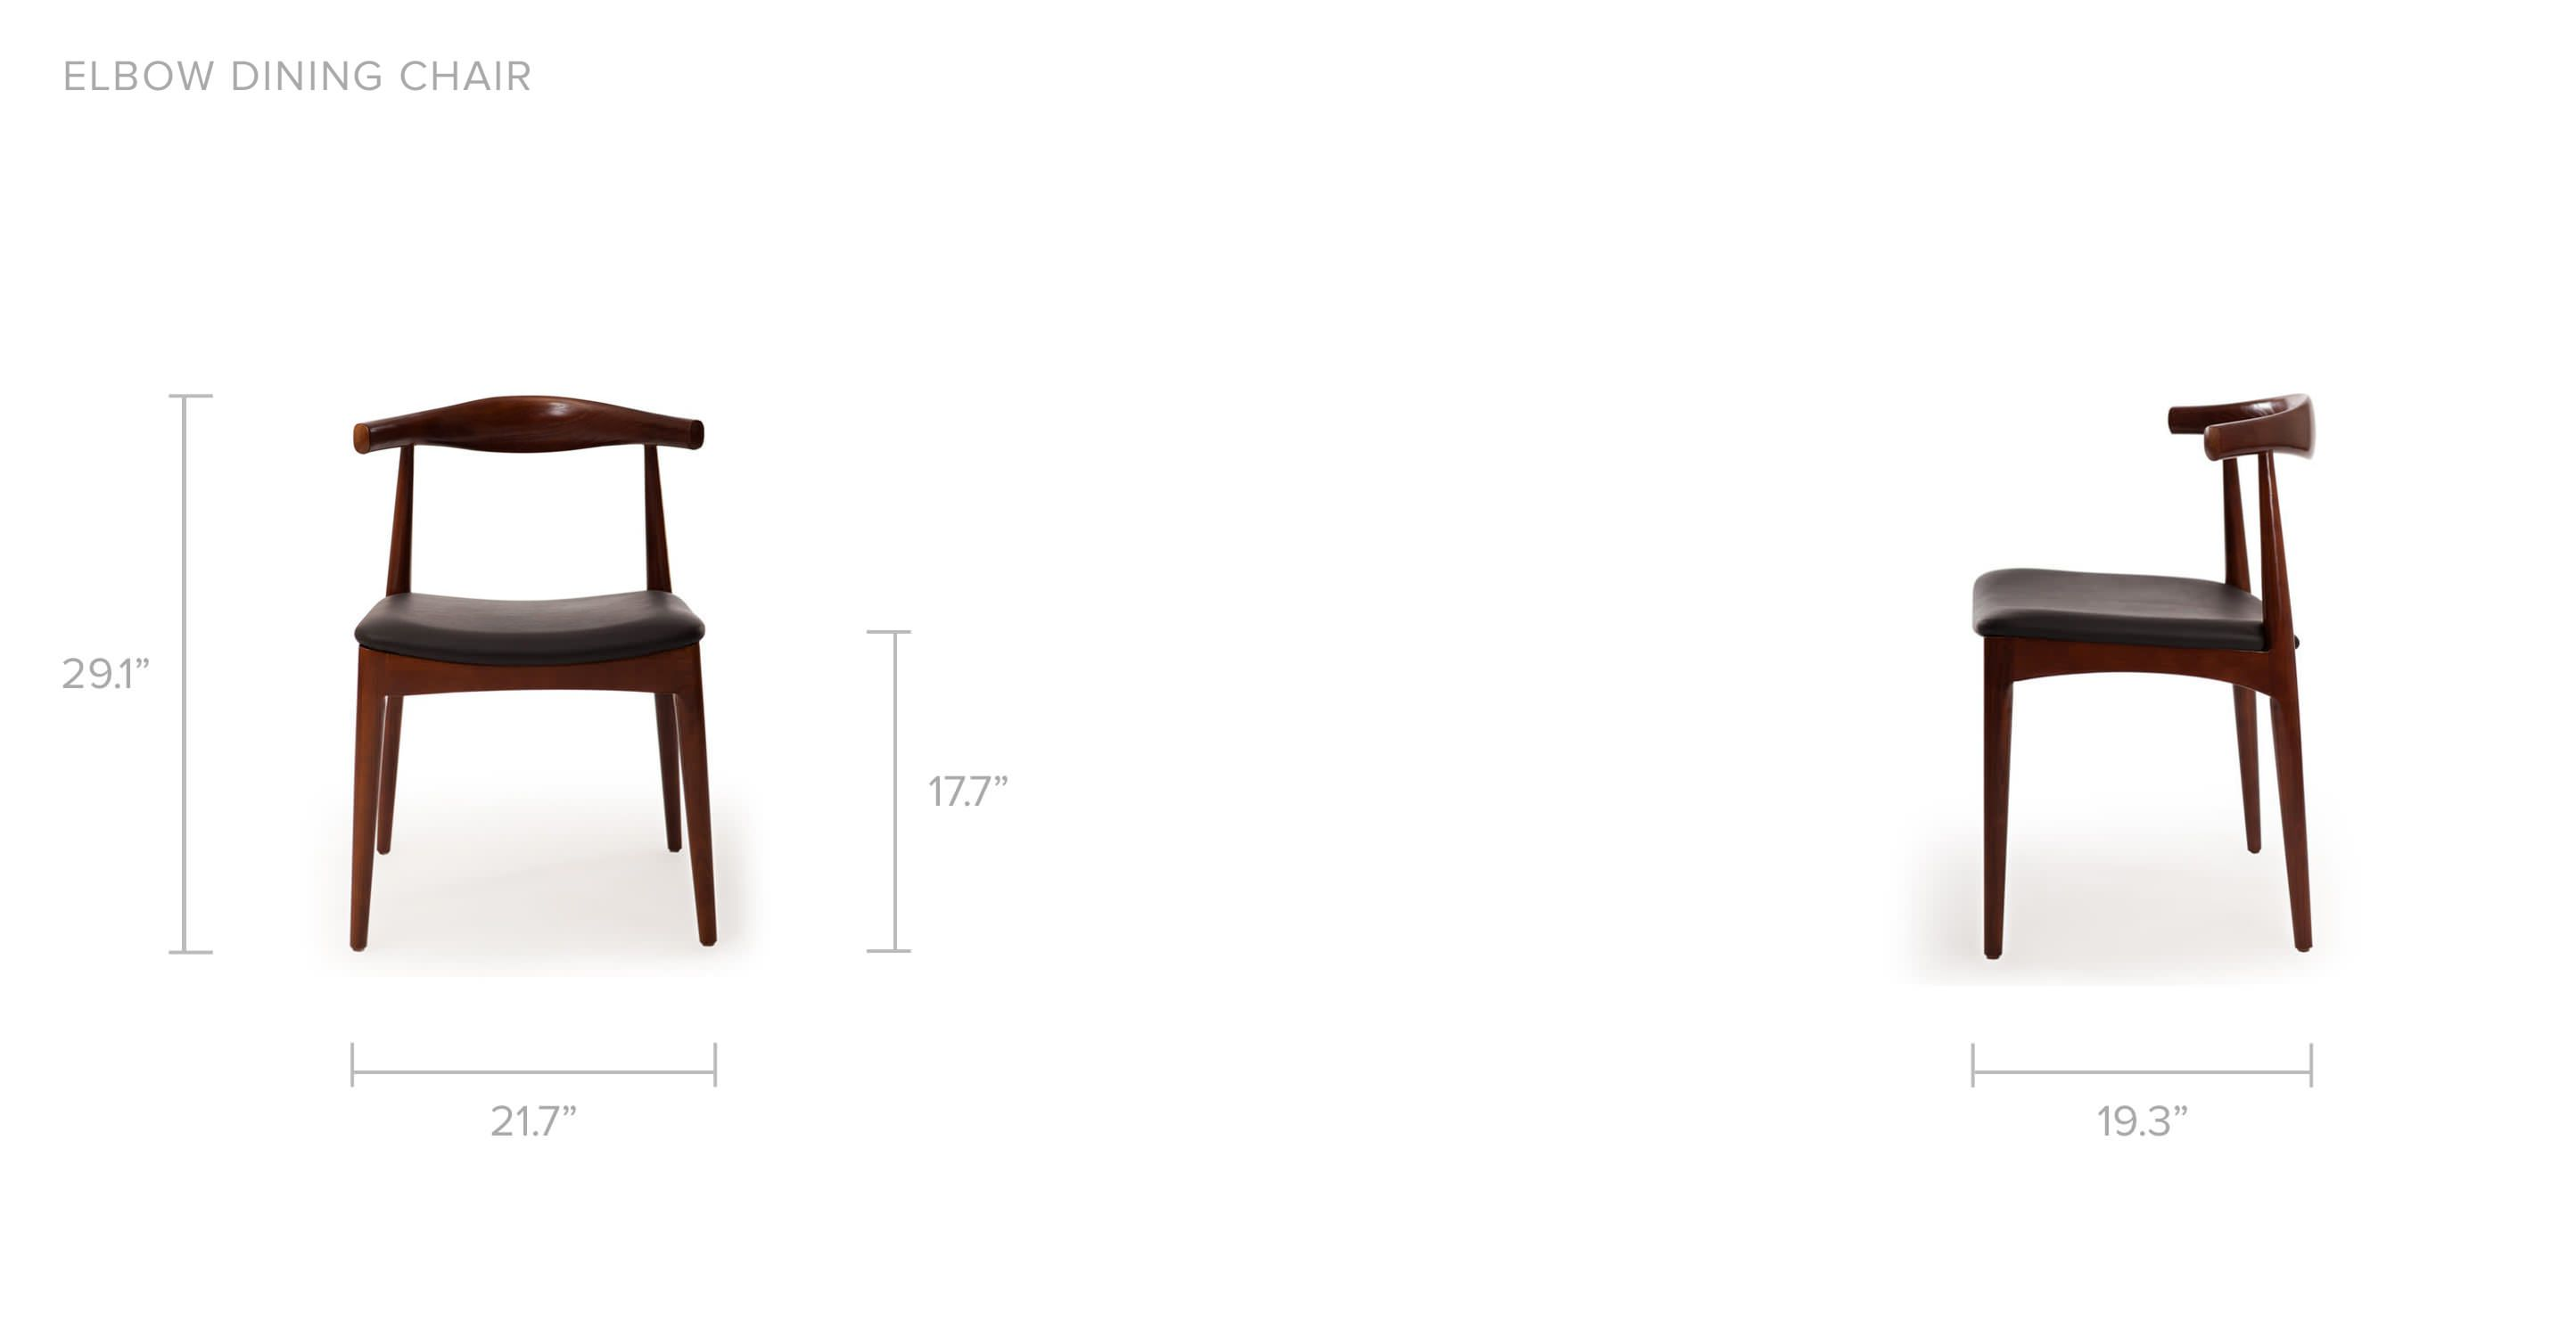 drawings-elbow-diningchair.jpg